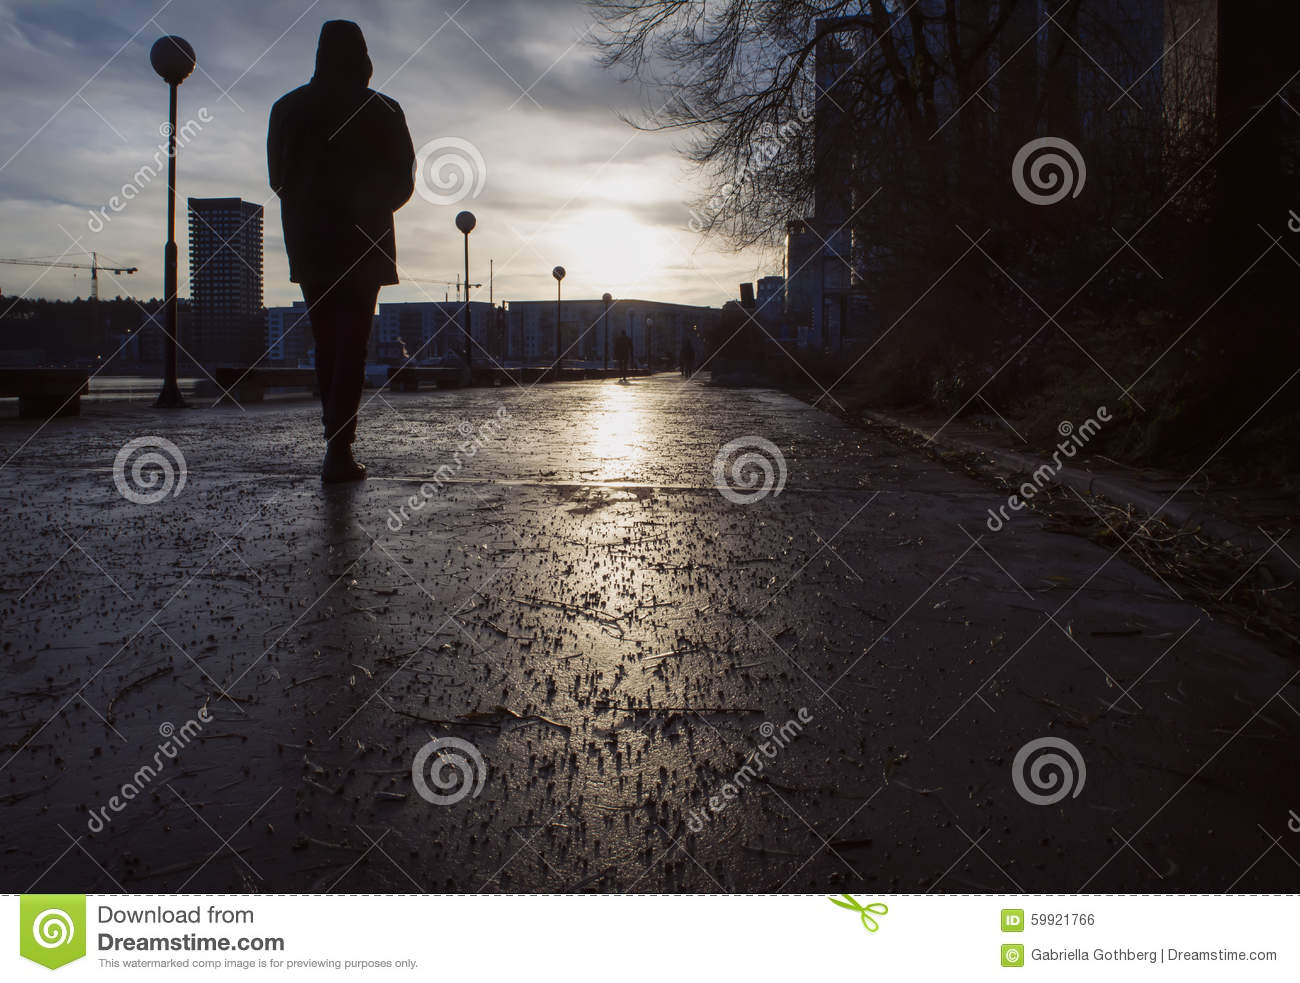 Silhouette of man walking on a damp street a gloomy day in late autumn/winter,